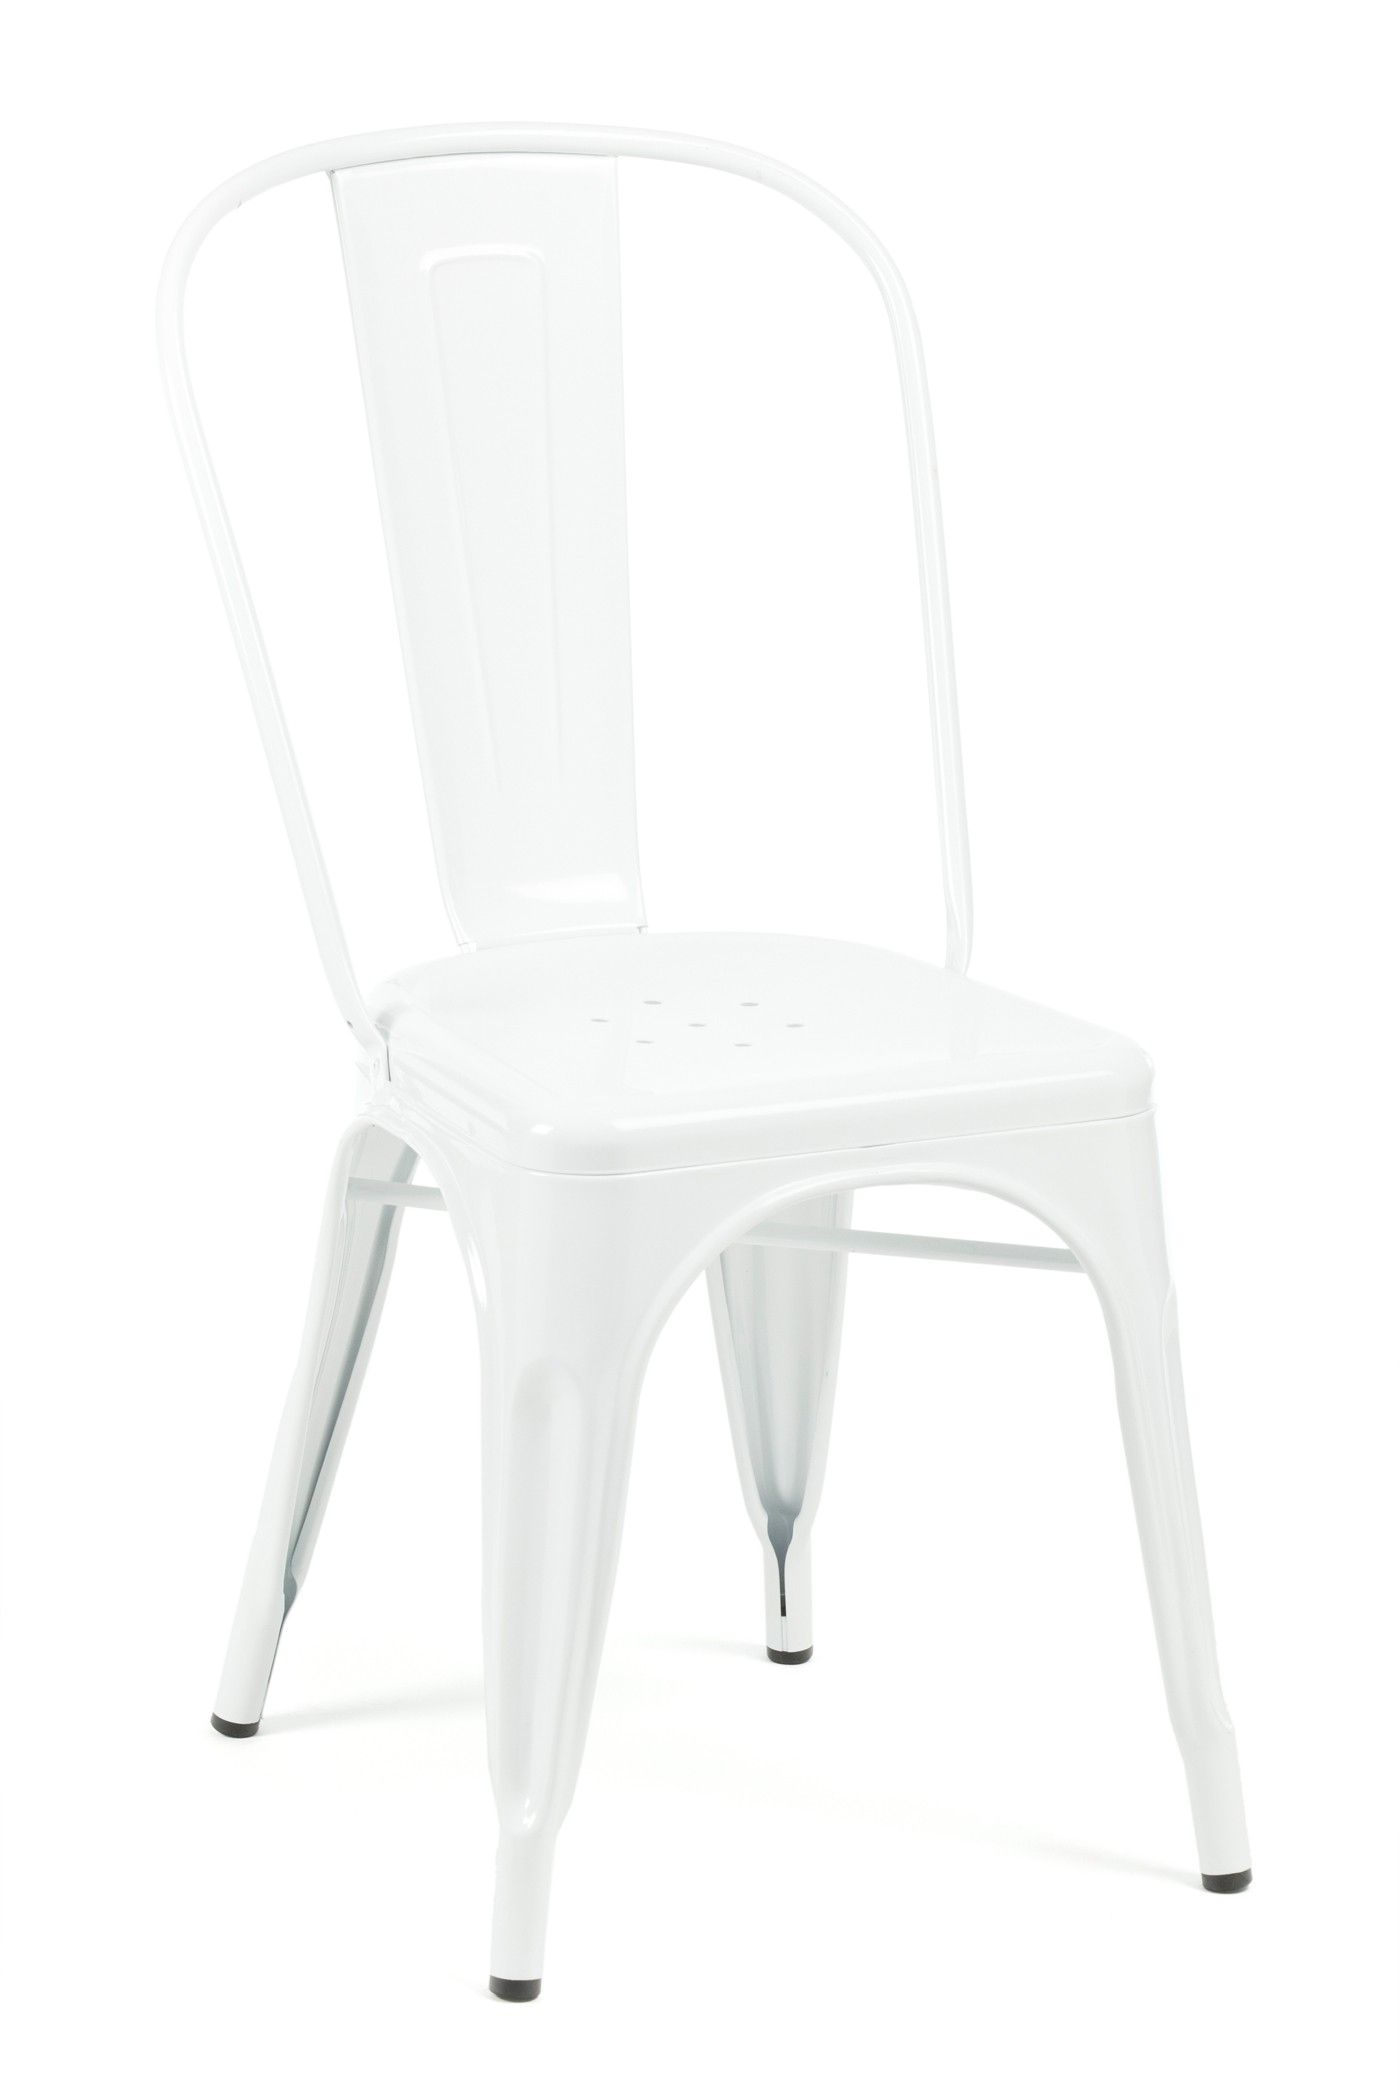 Marais A Side Chair White / Industry West | Side chairs ...